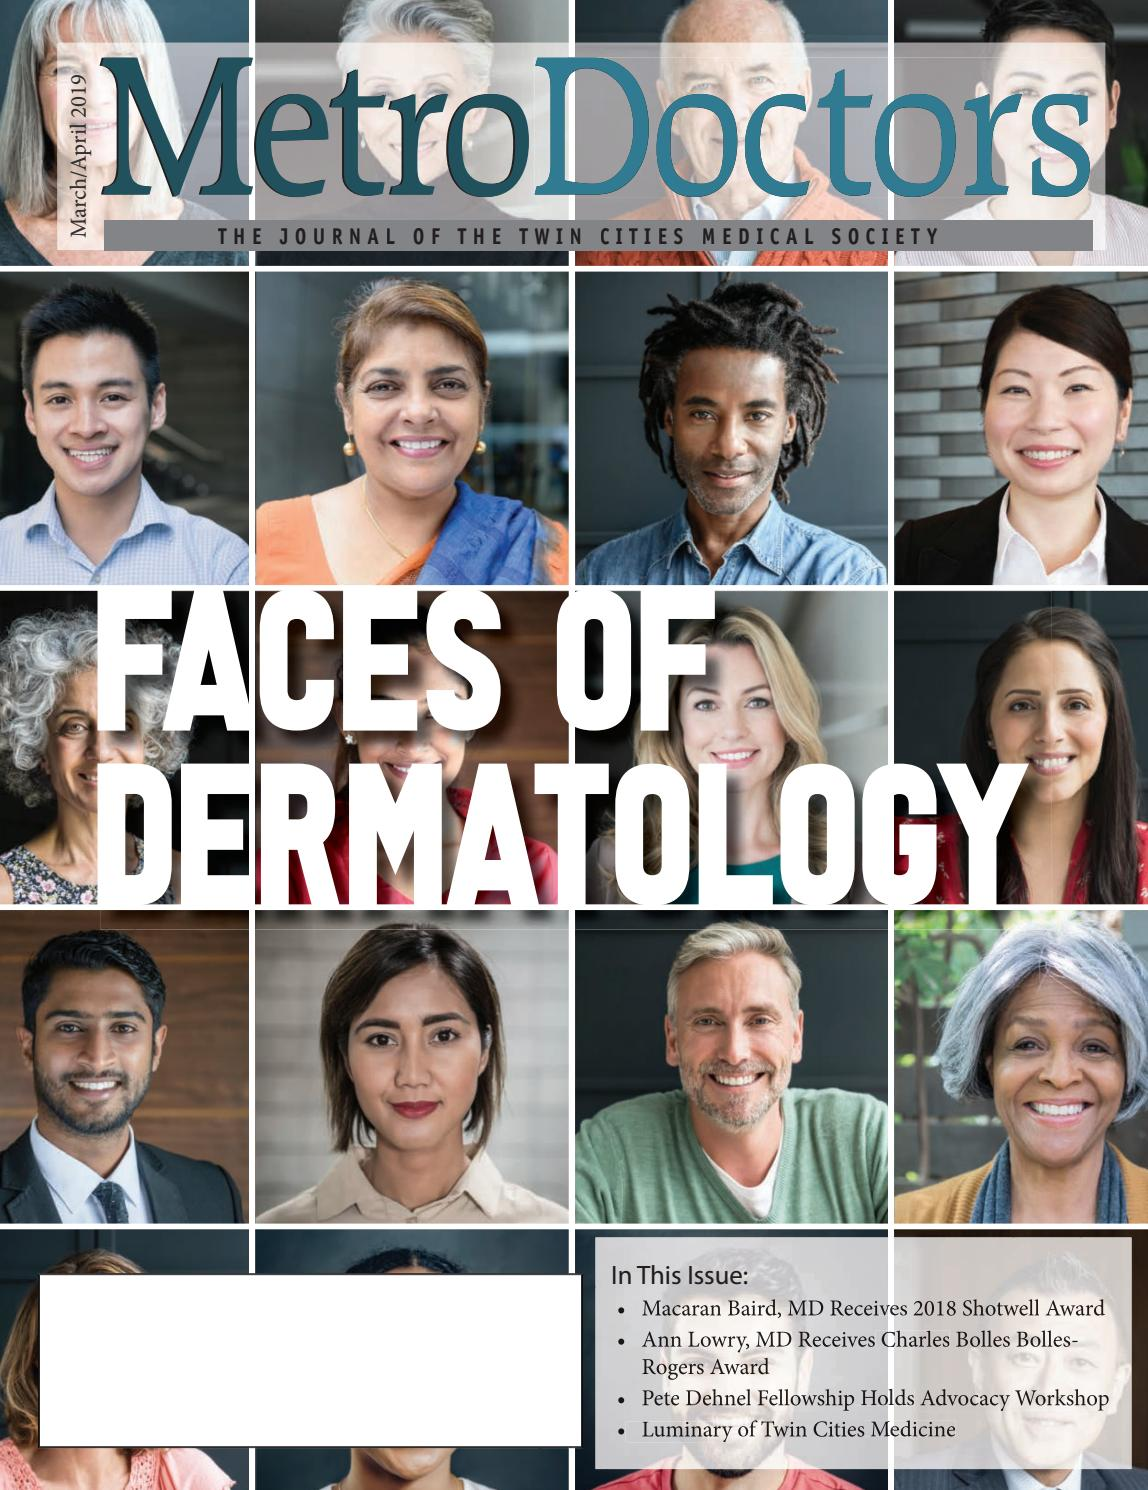 769d47a2c4f March April 2019 - Faces of Dermatology by Twin Cities Medical Society -  issuu